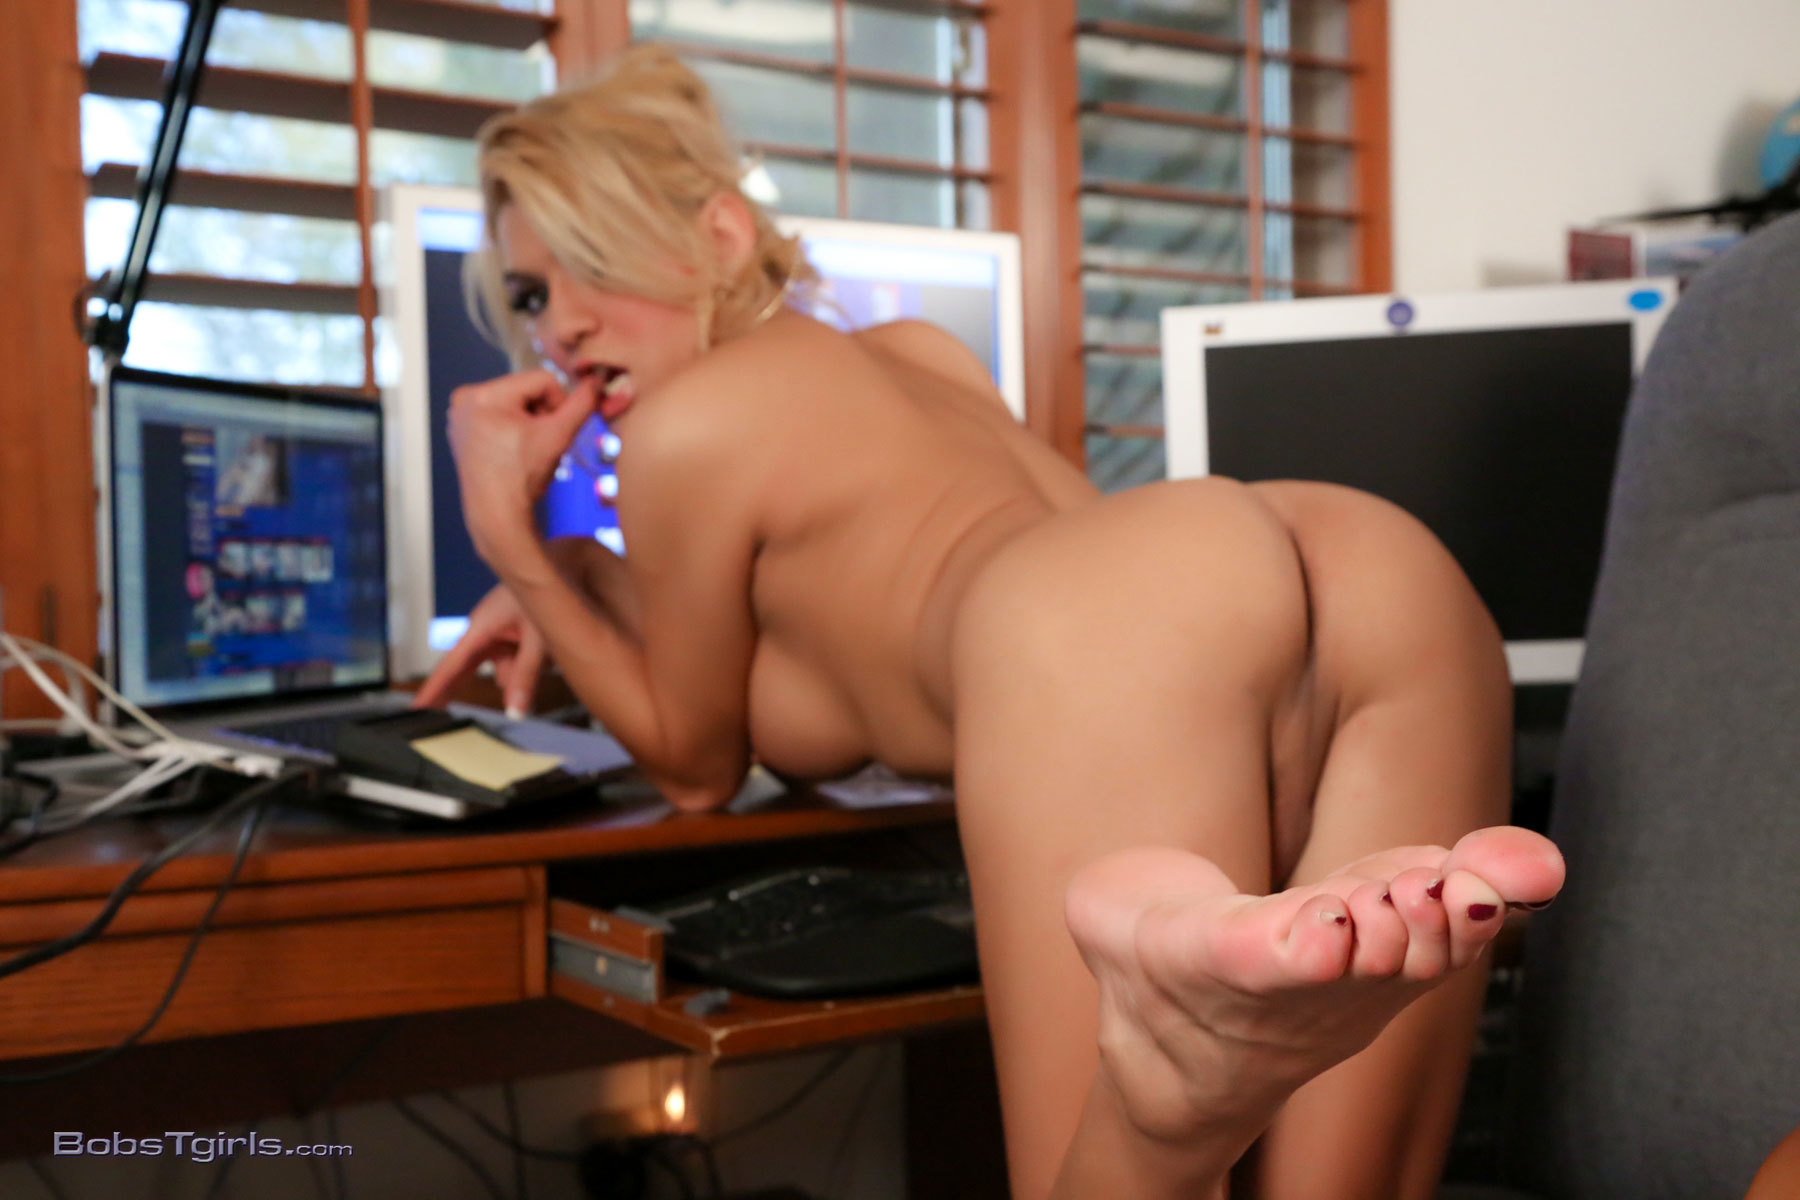 gianna rivera hungry in the office